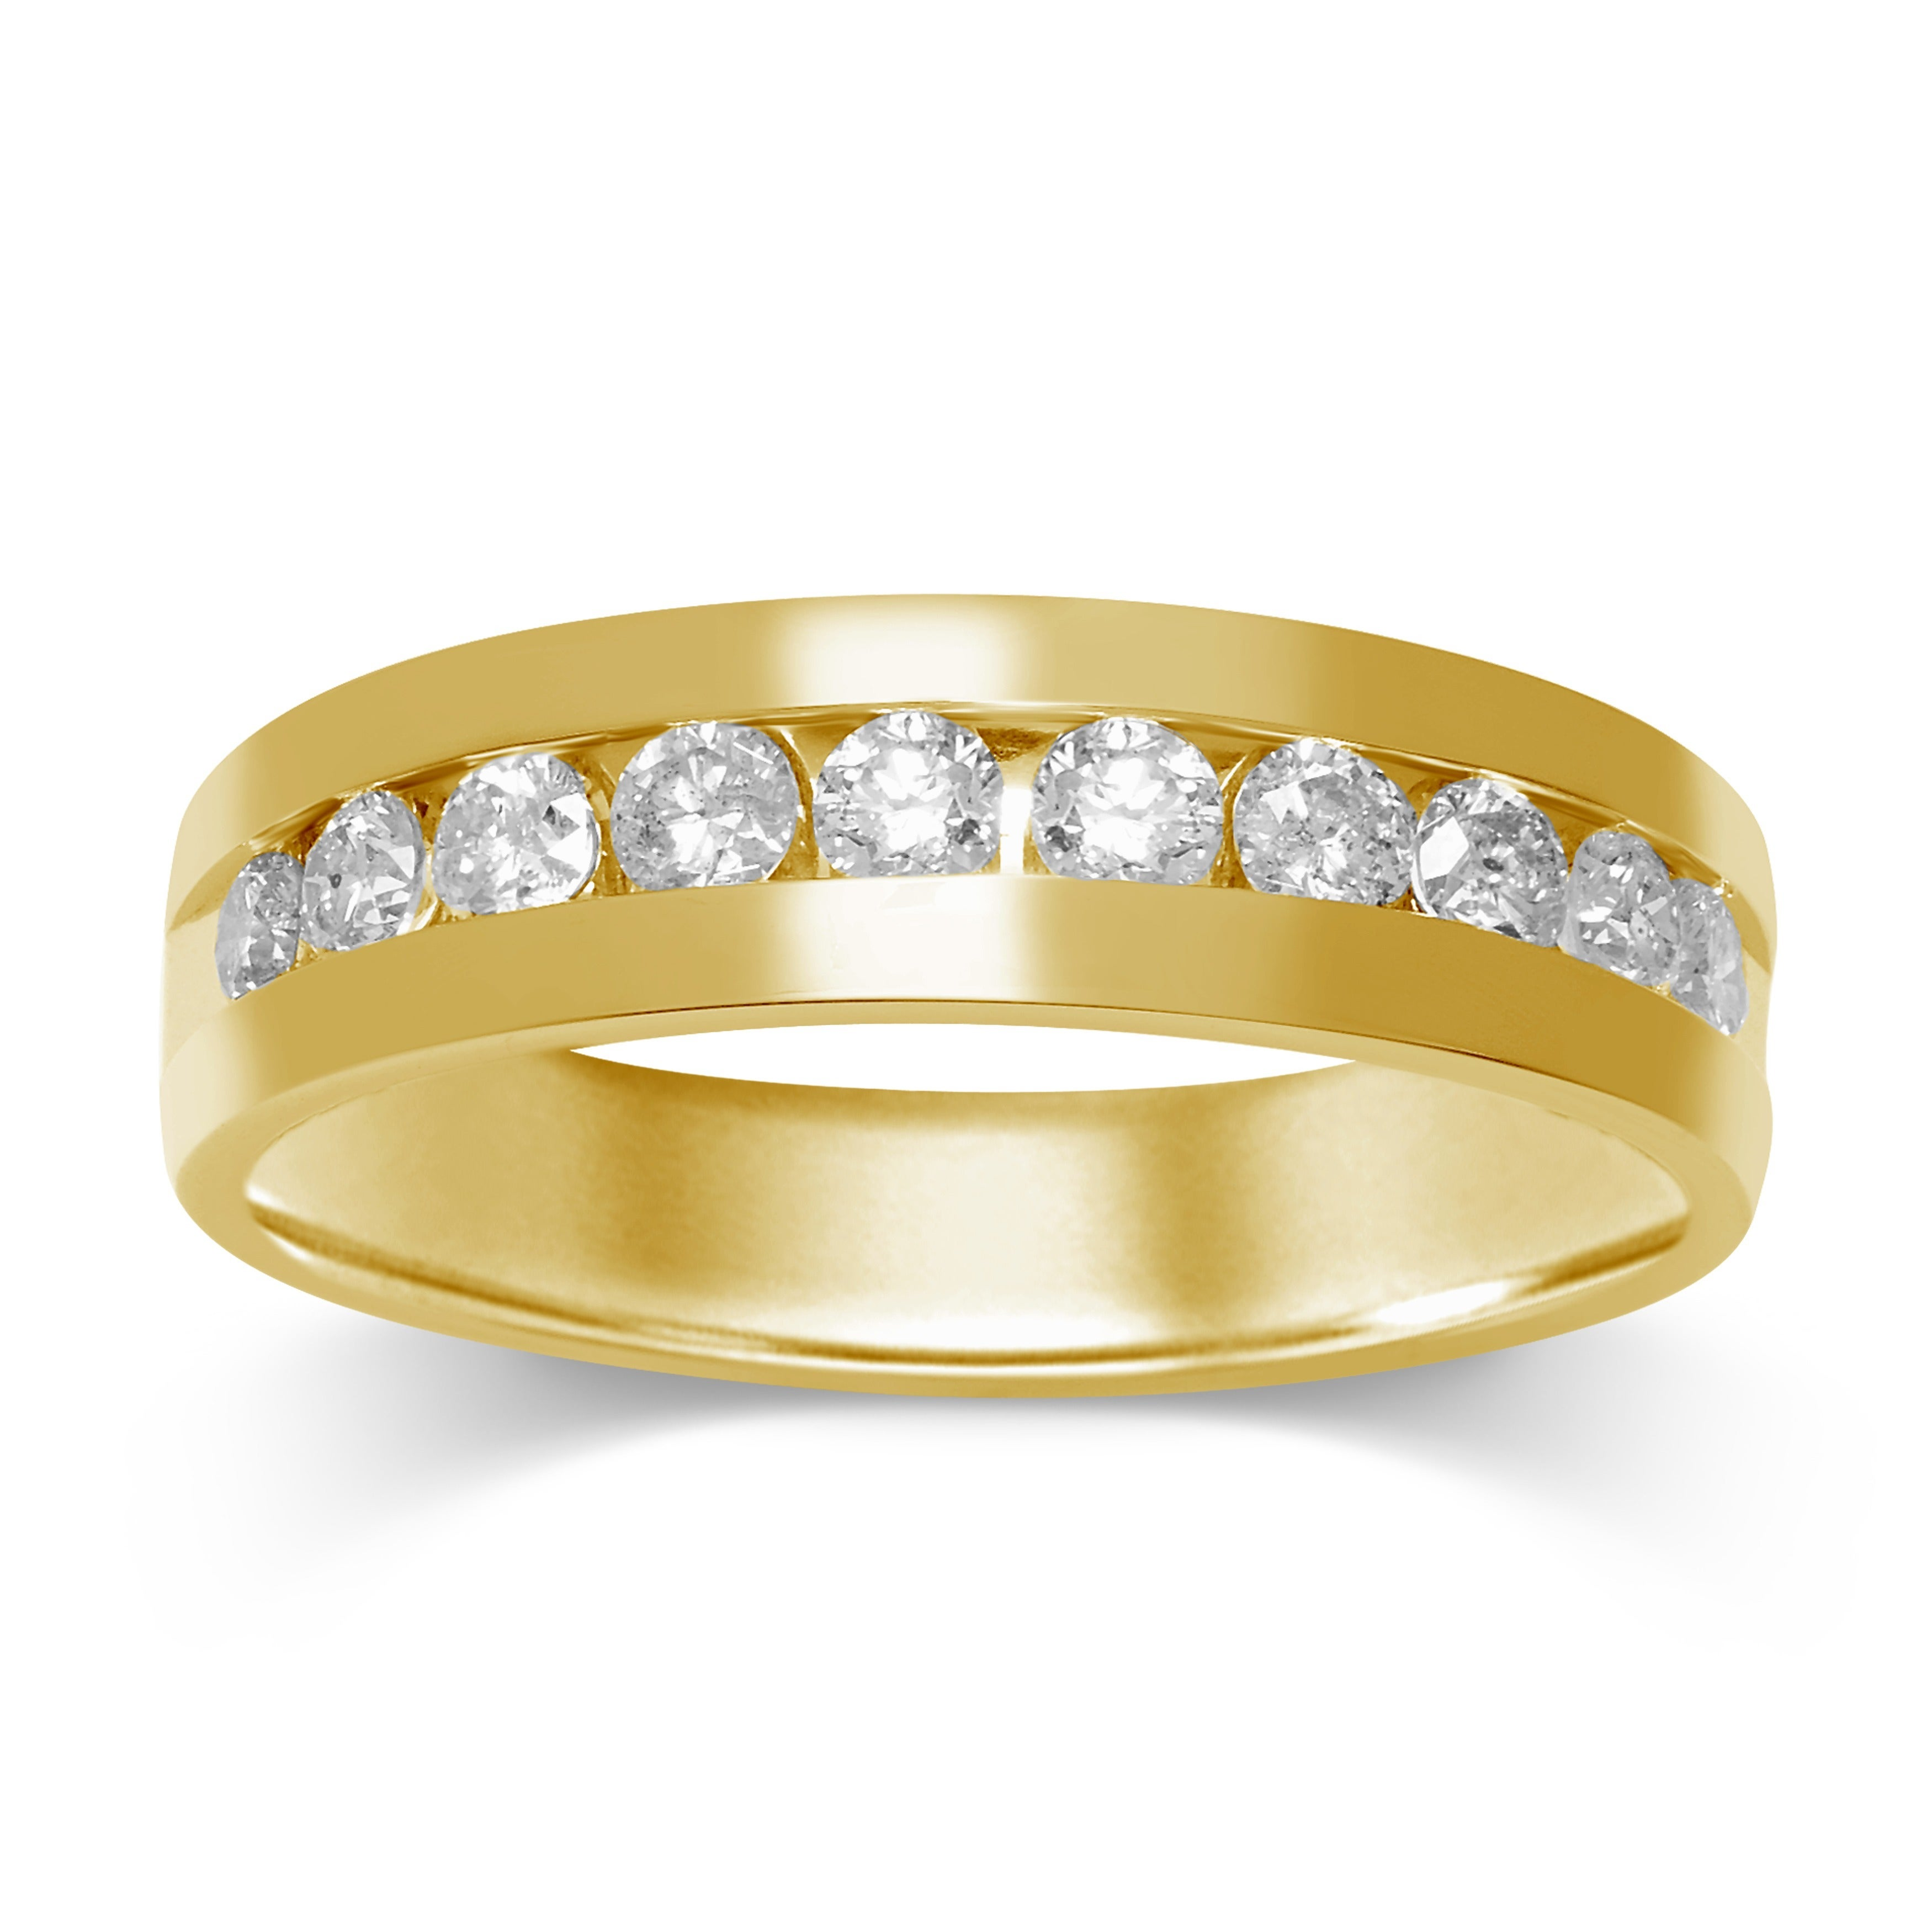 ipunya diamond ring round than beautiful cut more gold yellow rings her wedding band for vintage bands